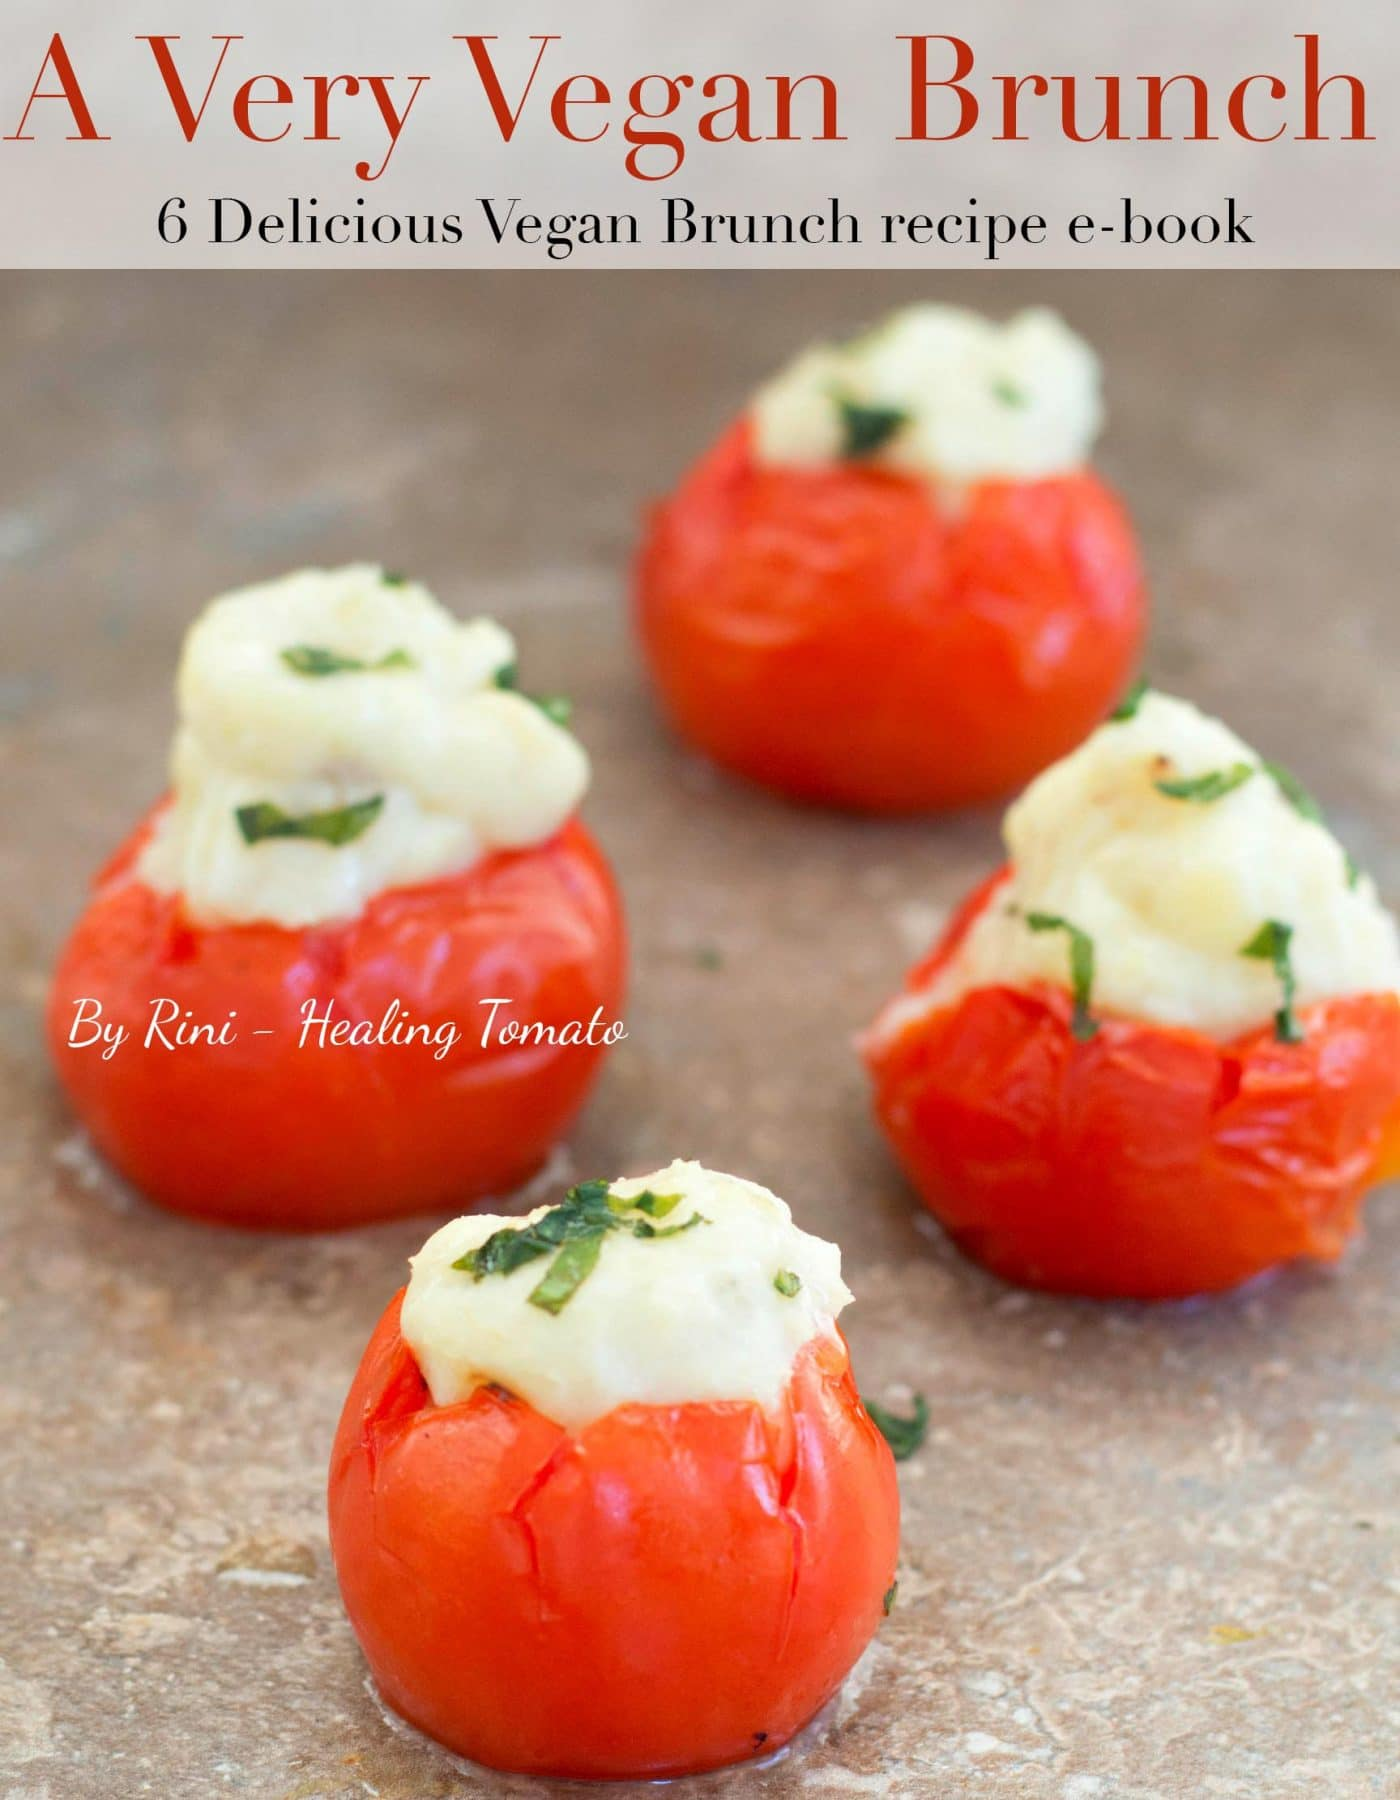 Vegan brunch e book full of quick easy vegetarian recipes easy a very vegan brunch 6 amazingly delicious vegan brunch recipes that include drinks forumfinder Choice Image